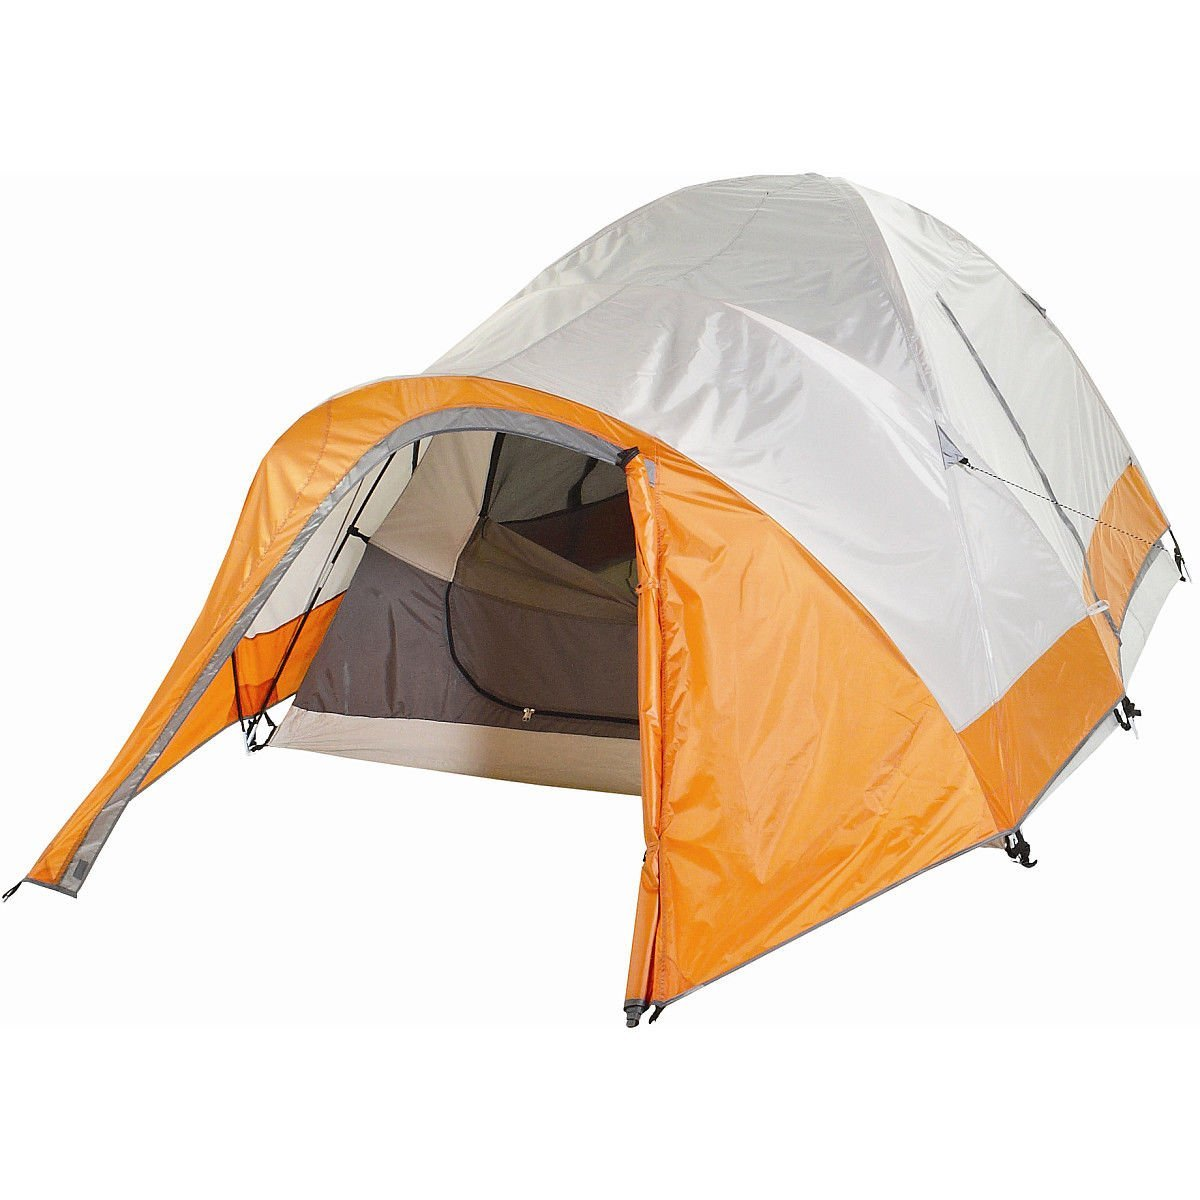 Alpine Design Horizon 3 Tent  sc 1 st  Alibaba.com & Buy ALPINE DESIGN Horizon 3 Tent in Cheap Price on Alibaba.com